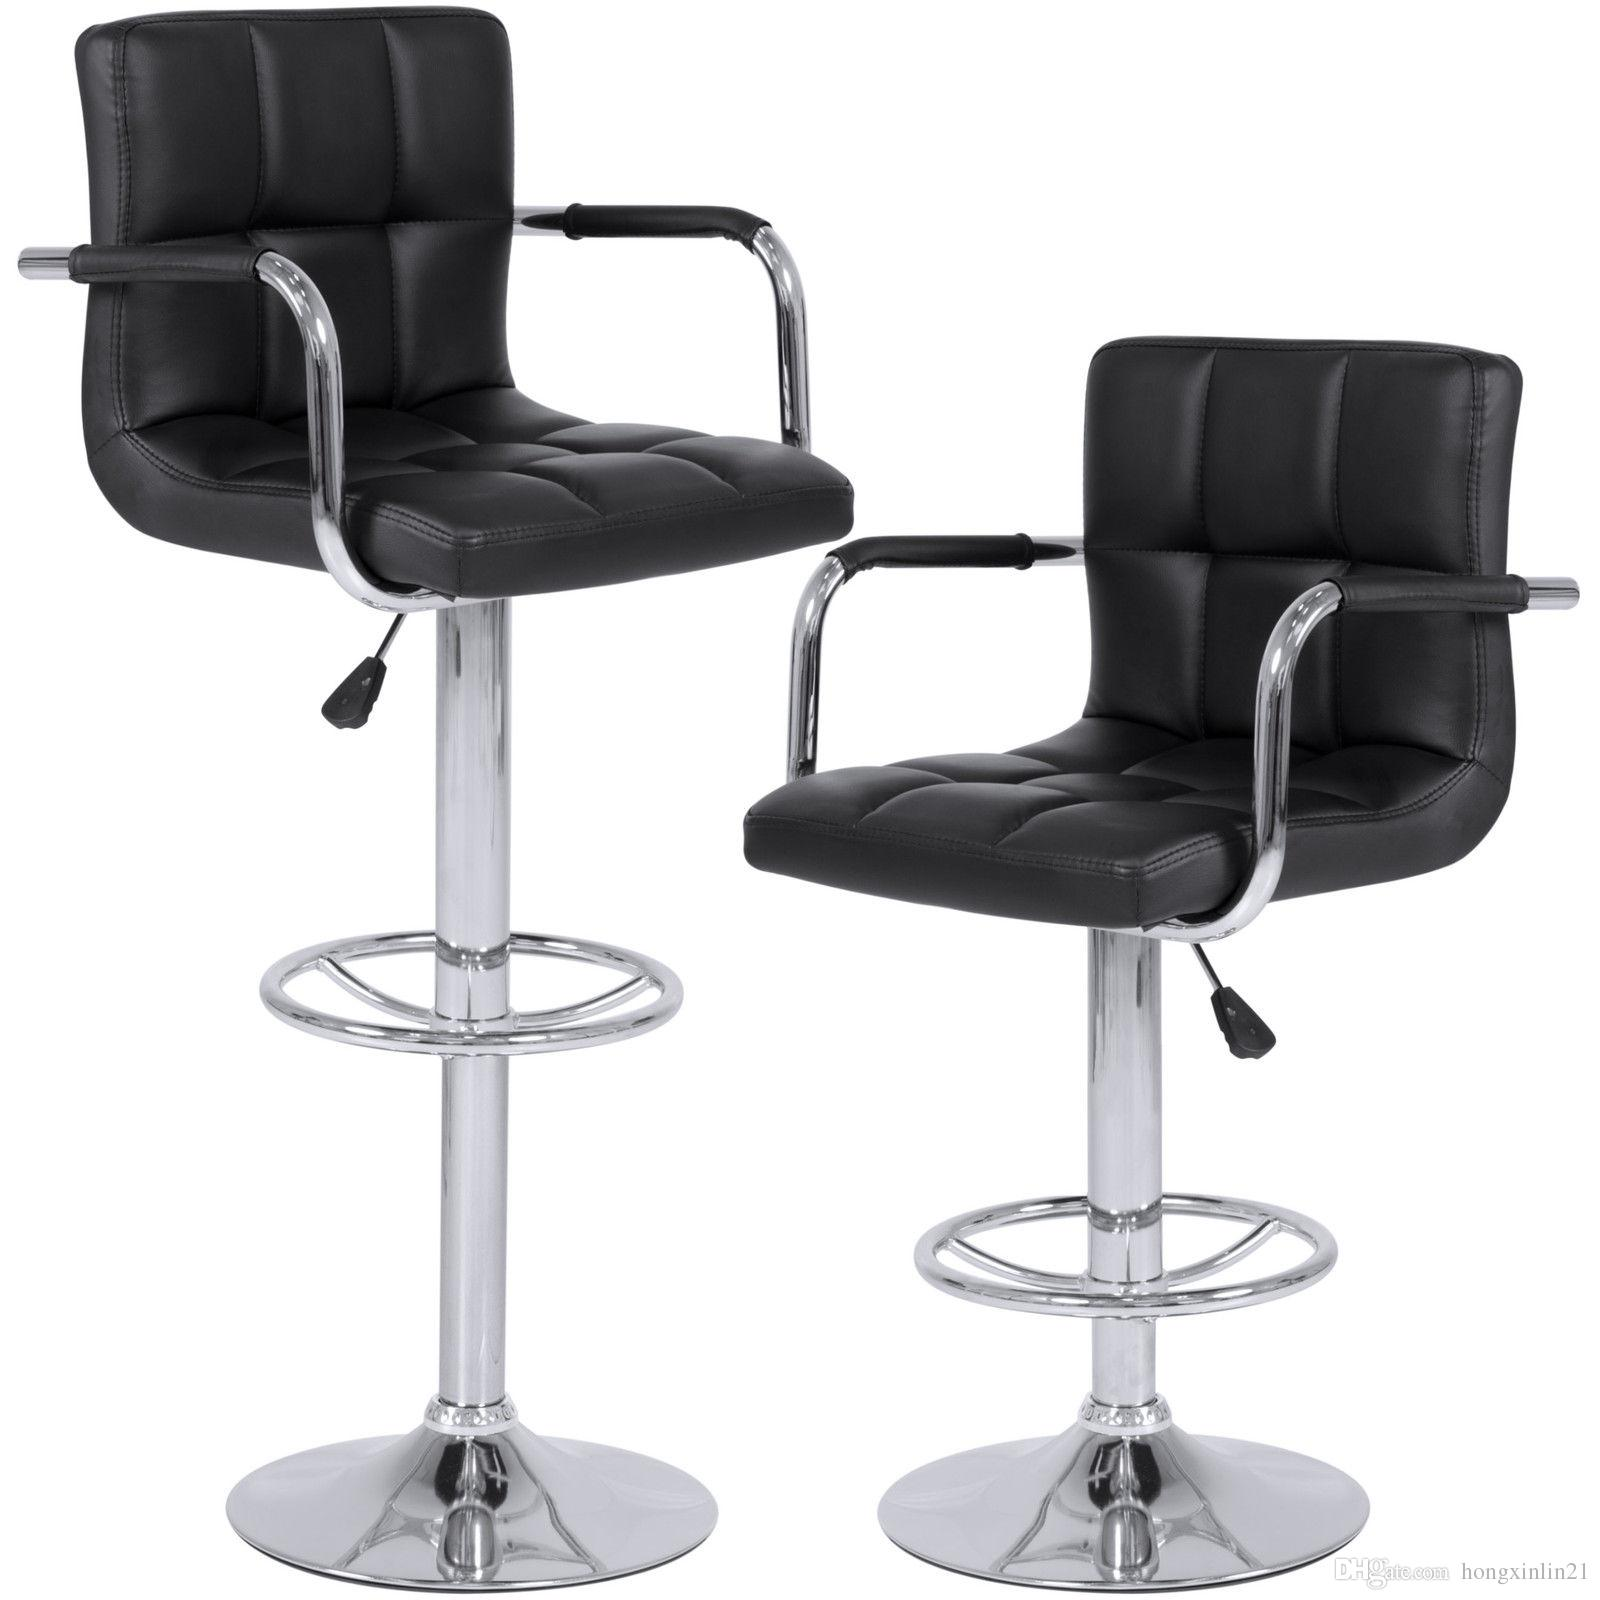 Set of 2 Swivel Hydraulic Height Adjustable Leather Pub Bar Stools Chair - Black